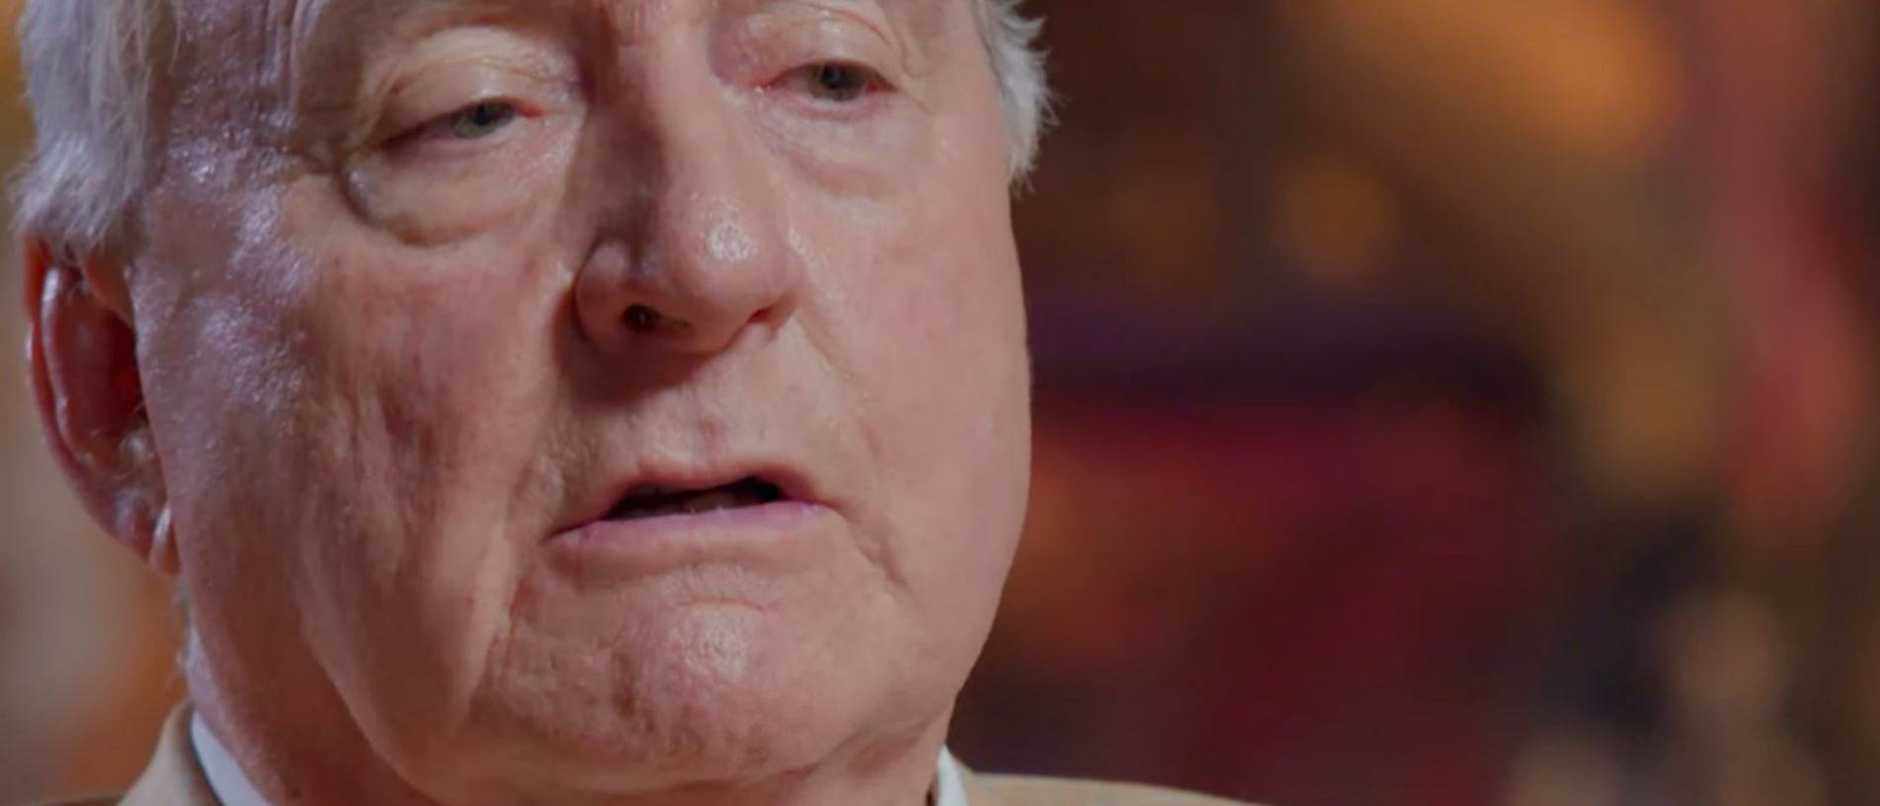 Alan Jones opens up to Anh Do about his 'died of shame' comment.